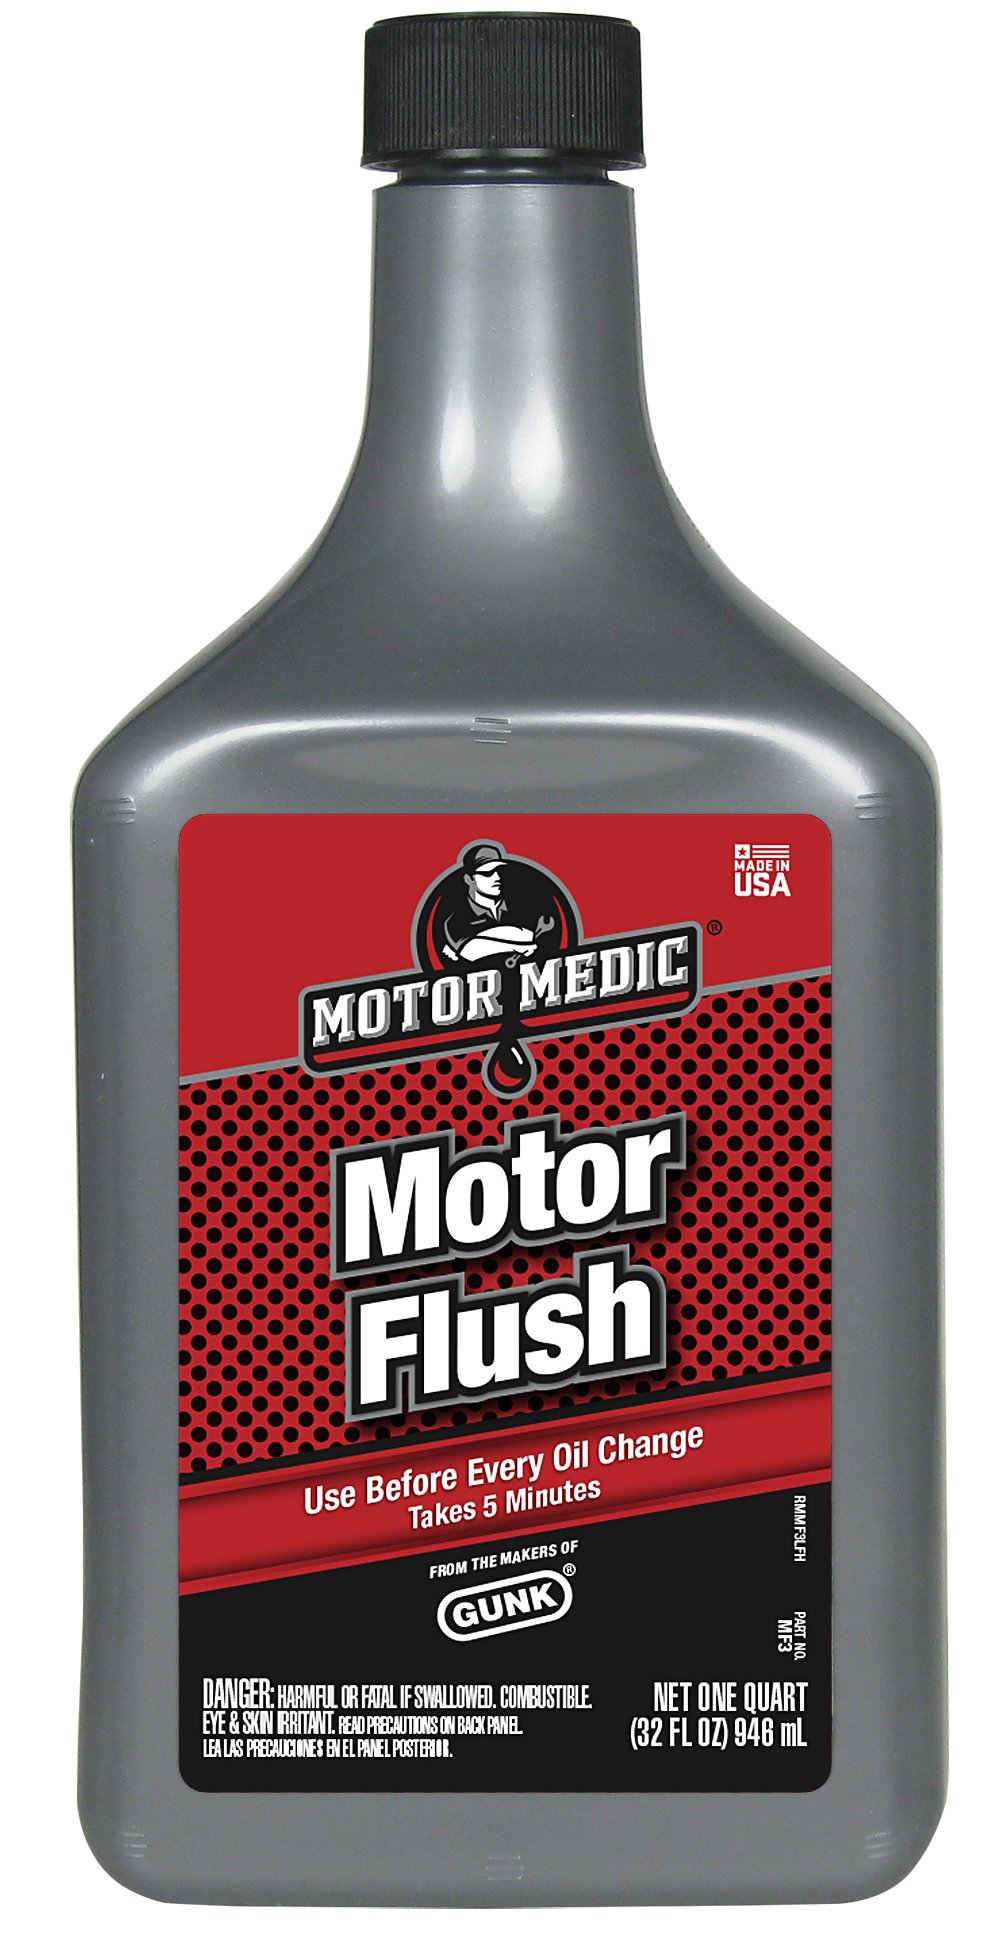 Niteo Motor Medic MF3-12PK 5-Minute Motor Flush - 32 oz, (Case of 12) by Niteo